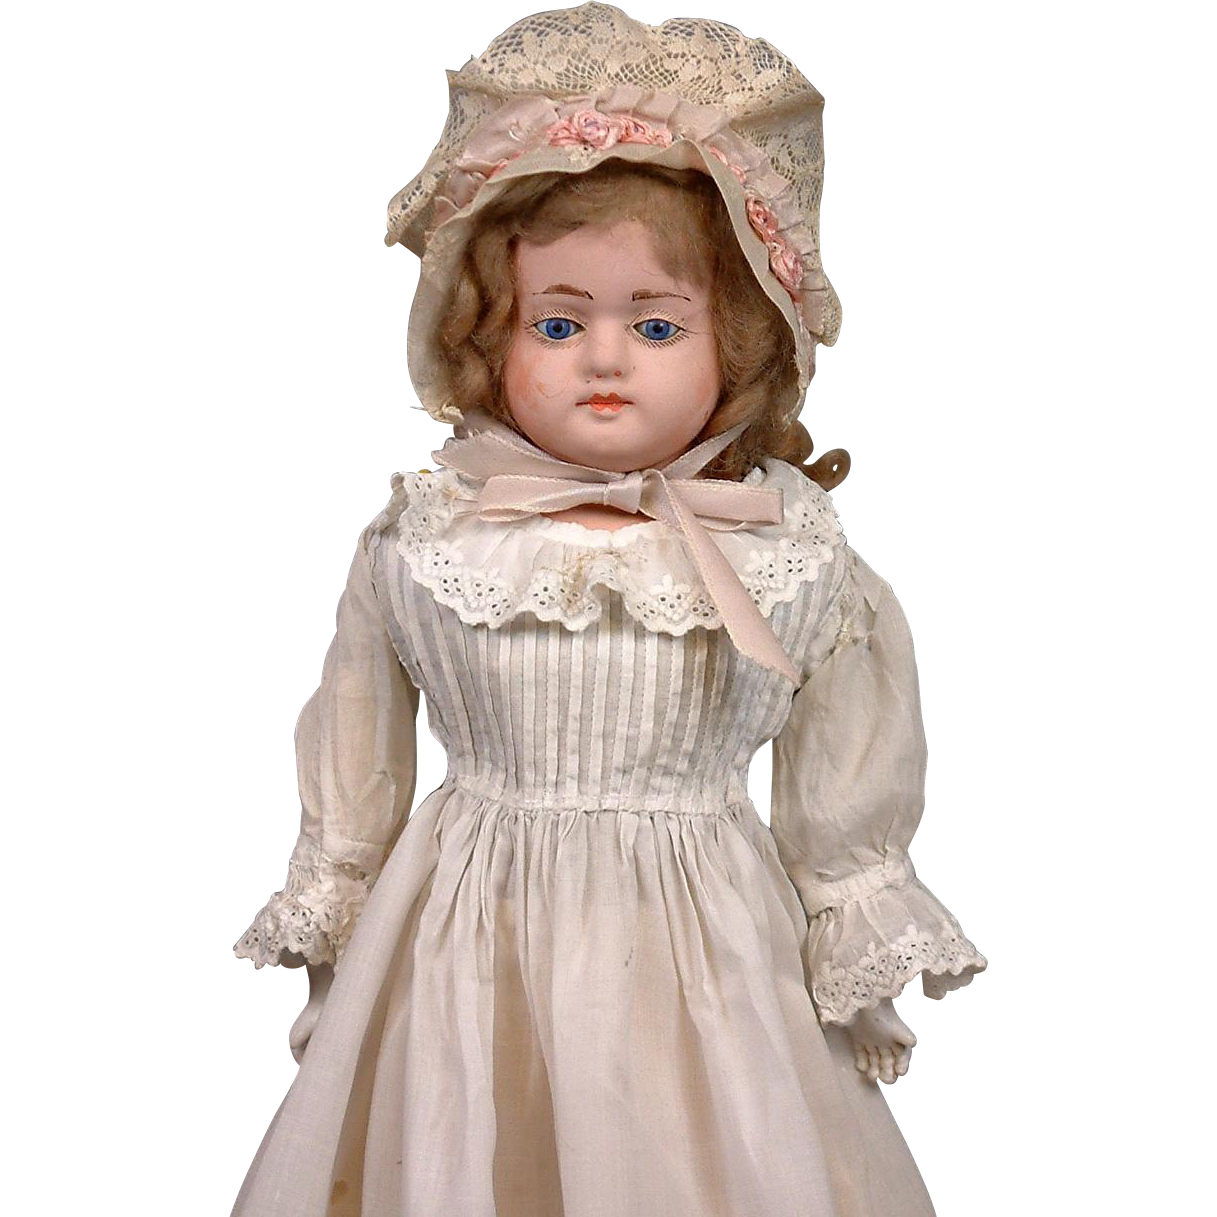 Exquisite c.1890 Early Antique Papier Mache German Girl w/Original Wig & Body, in Adorable Antique Costume WOW!